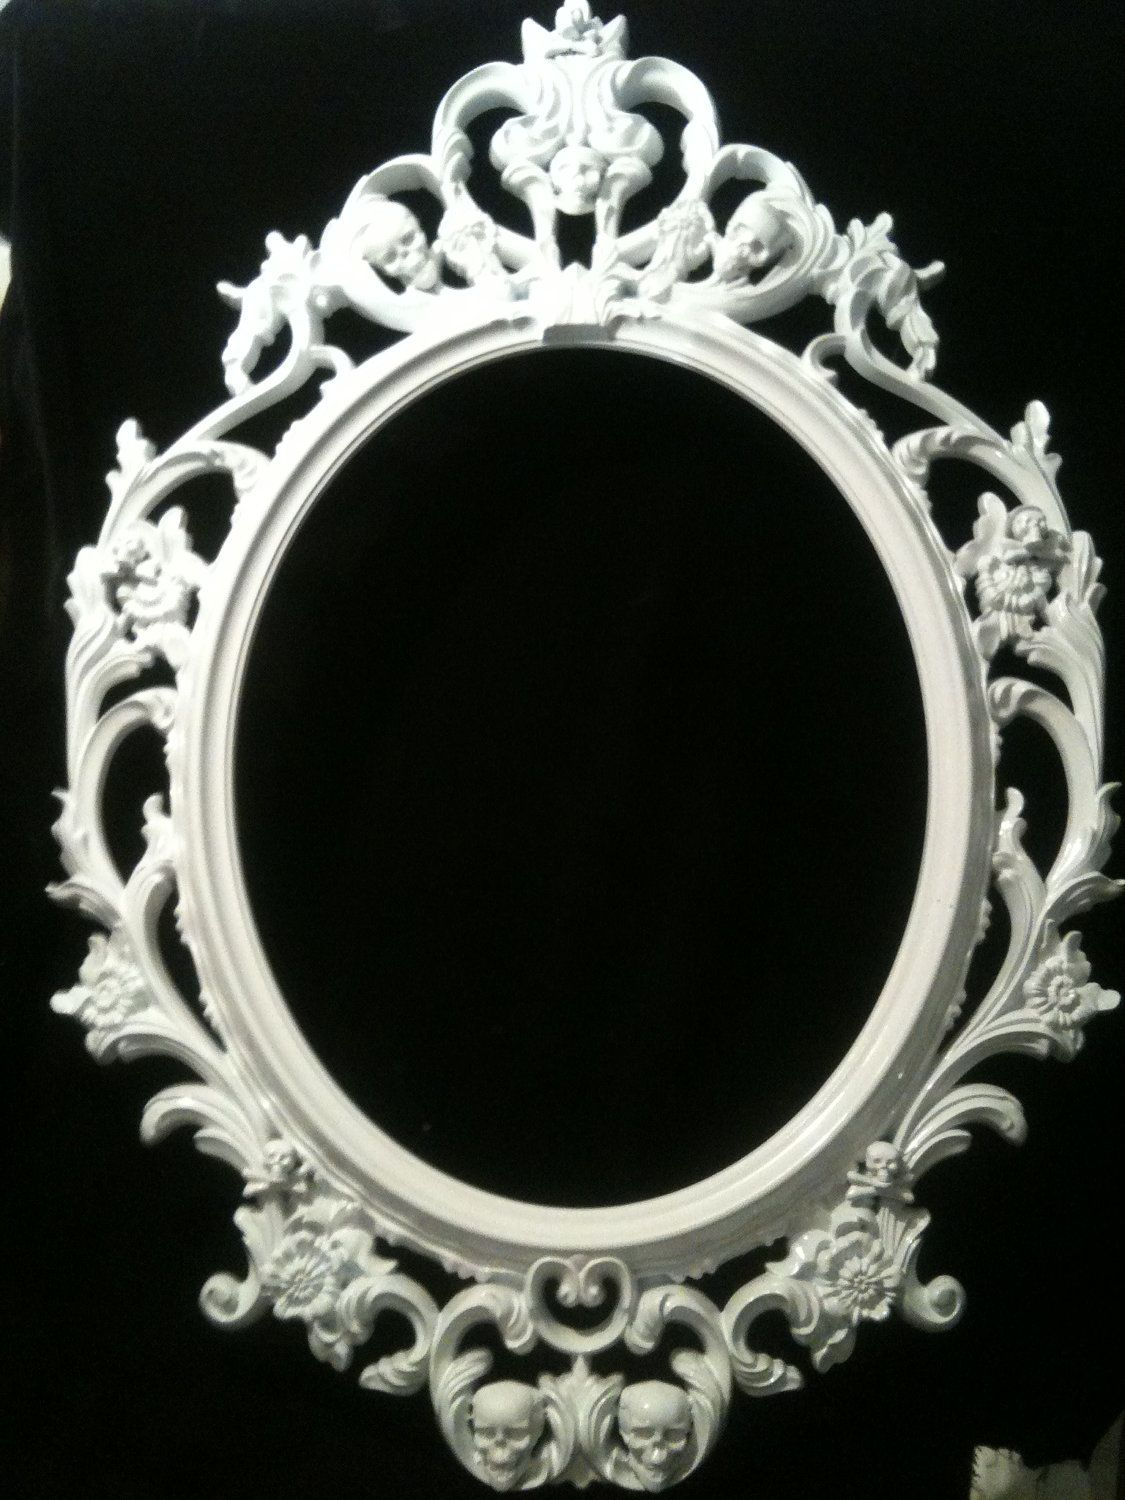 Gloss White Skull Oval Picture Frame Mirror Shabby Chic Baroque ...